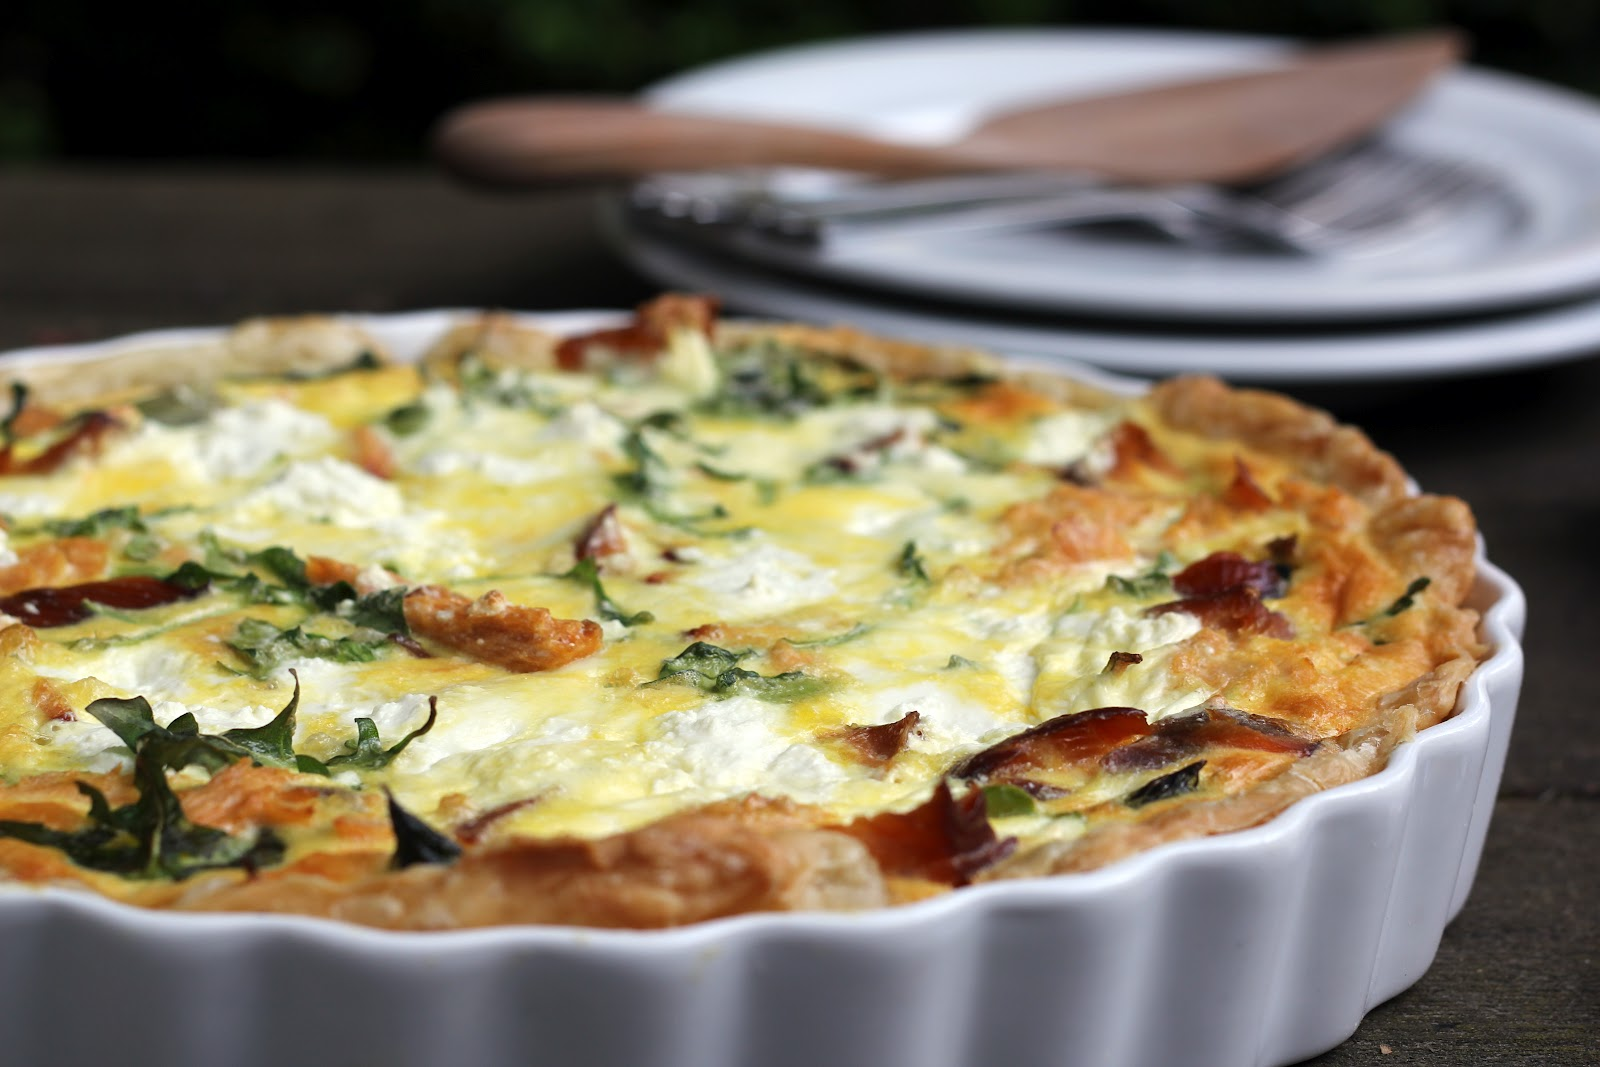 quiche recipe using puff pastry